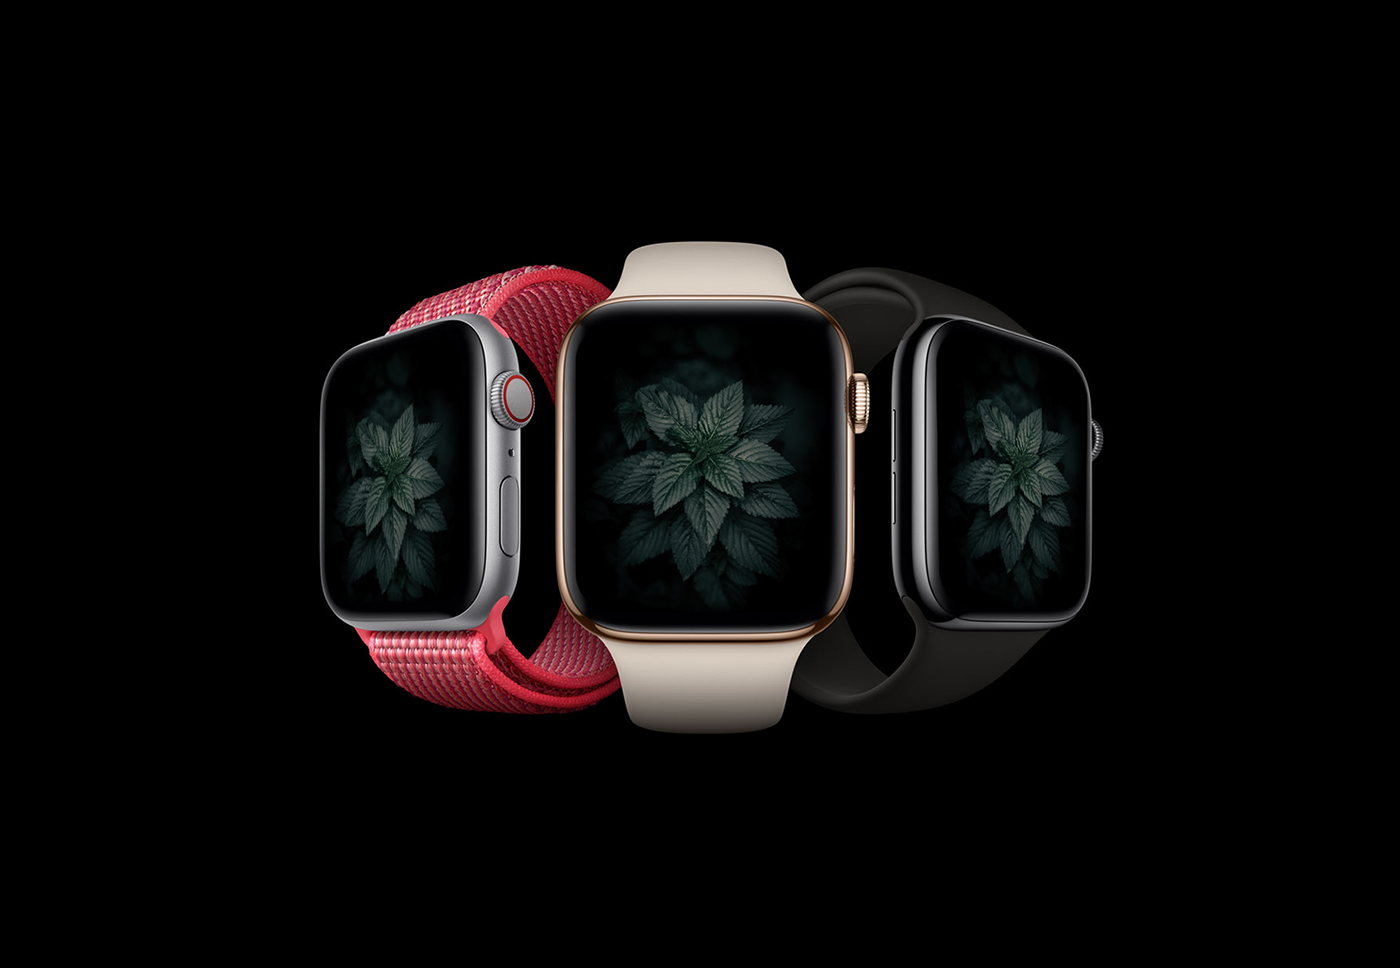 Free Download: Apple Watch Mockup